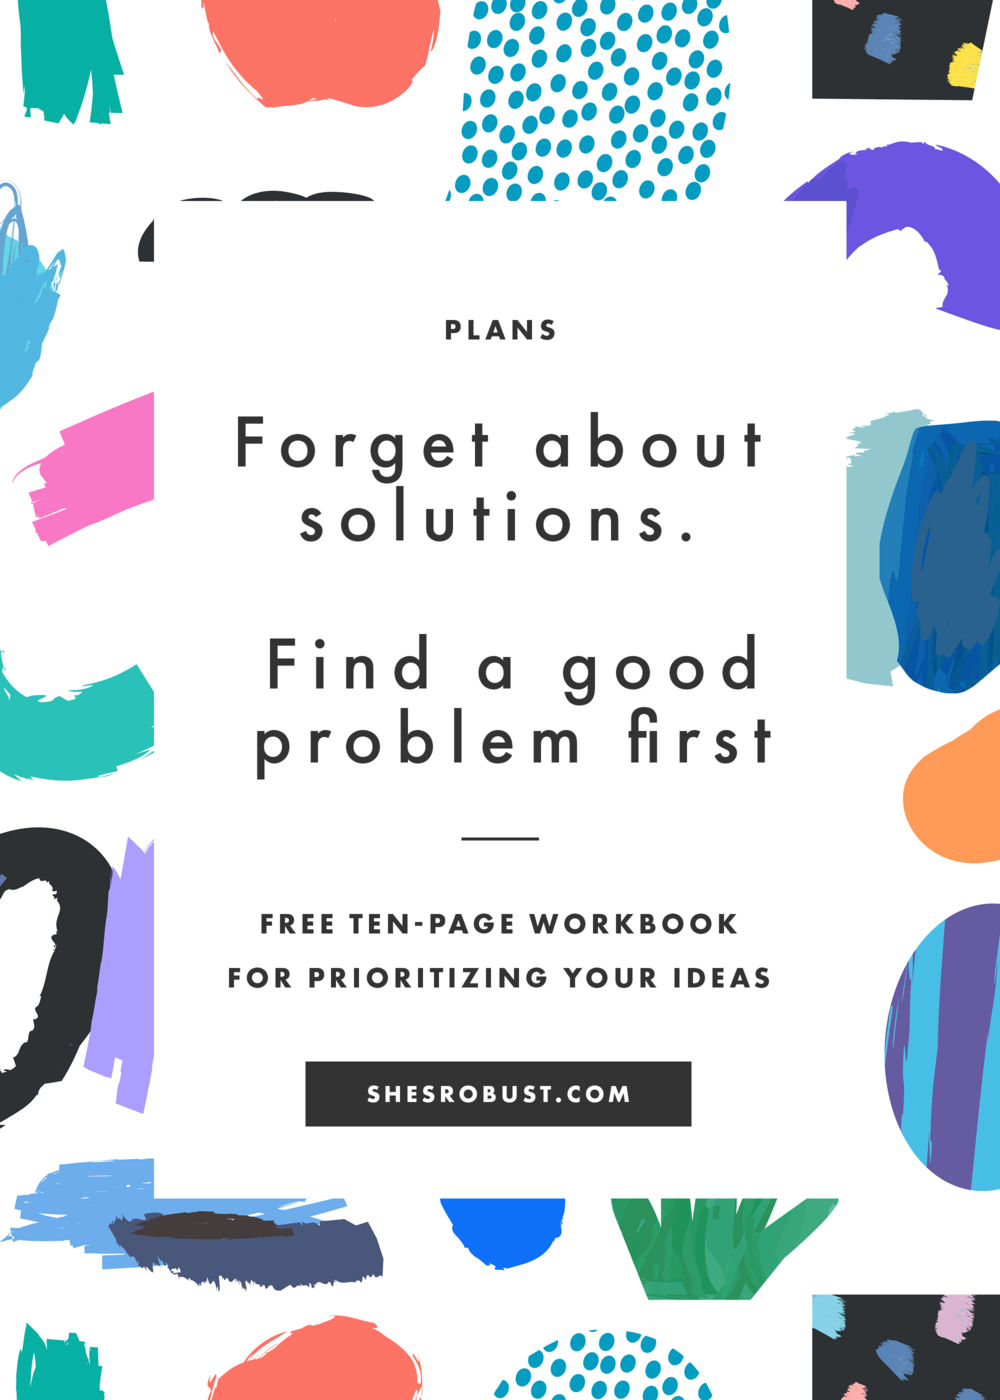 If you want to work on ideas that deliver meaningful impact, start by finding the right problem before you begin proposing solutions.